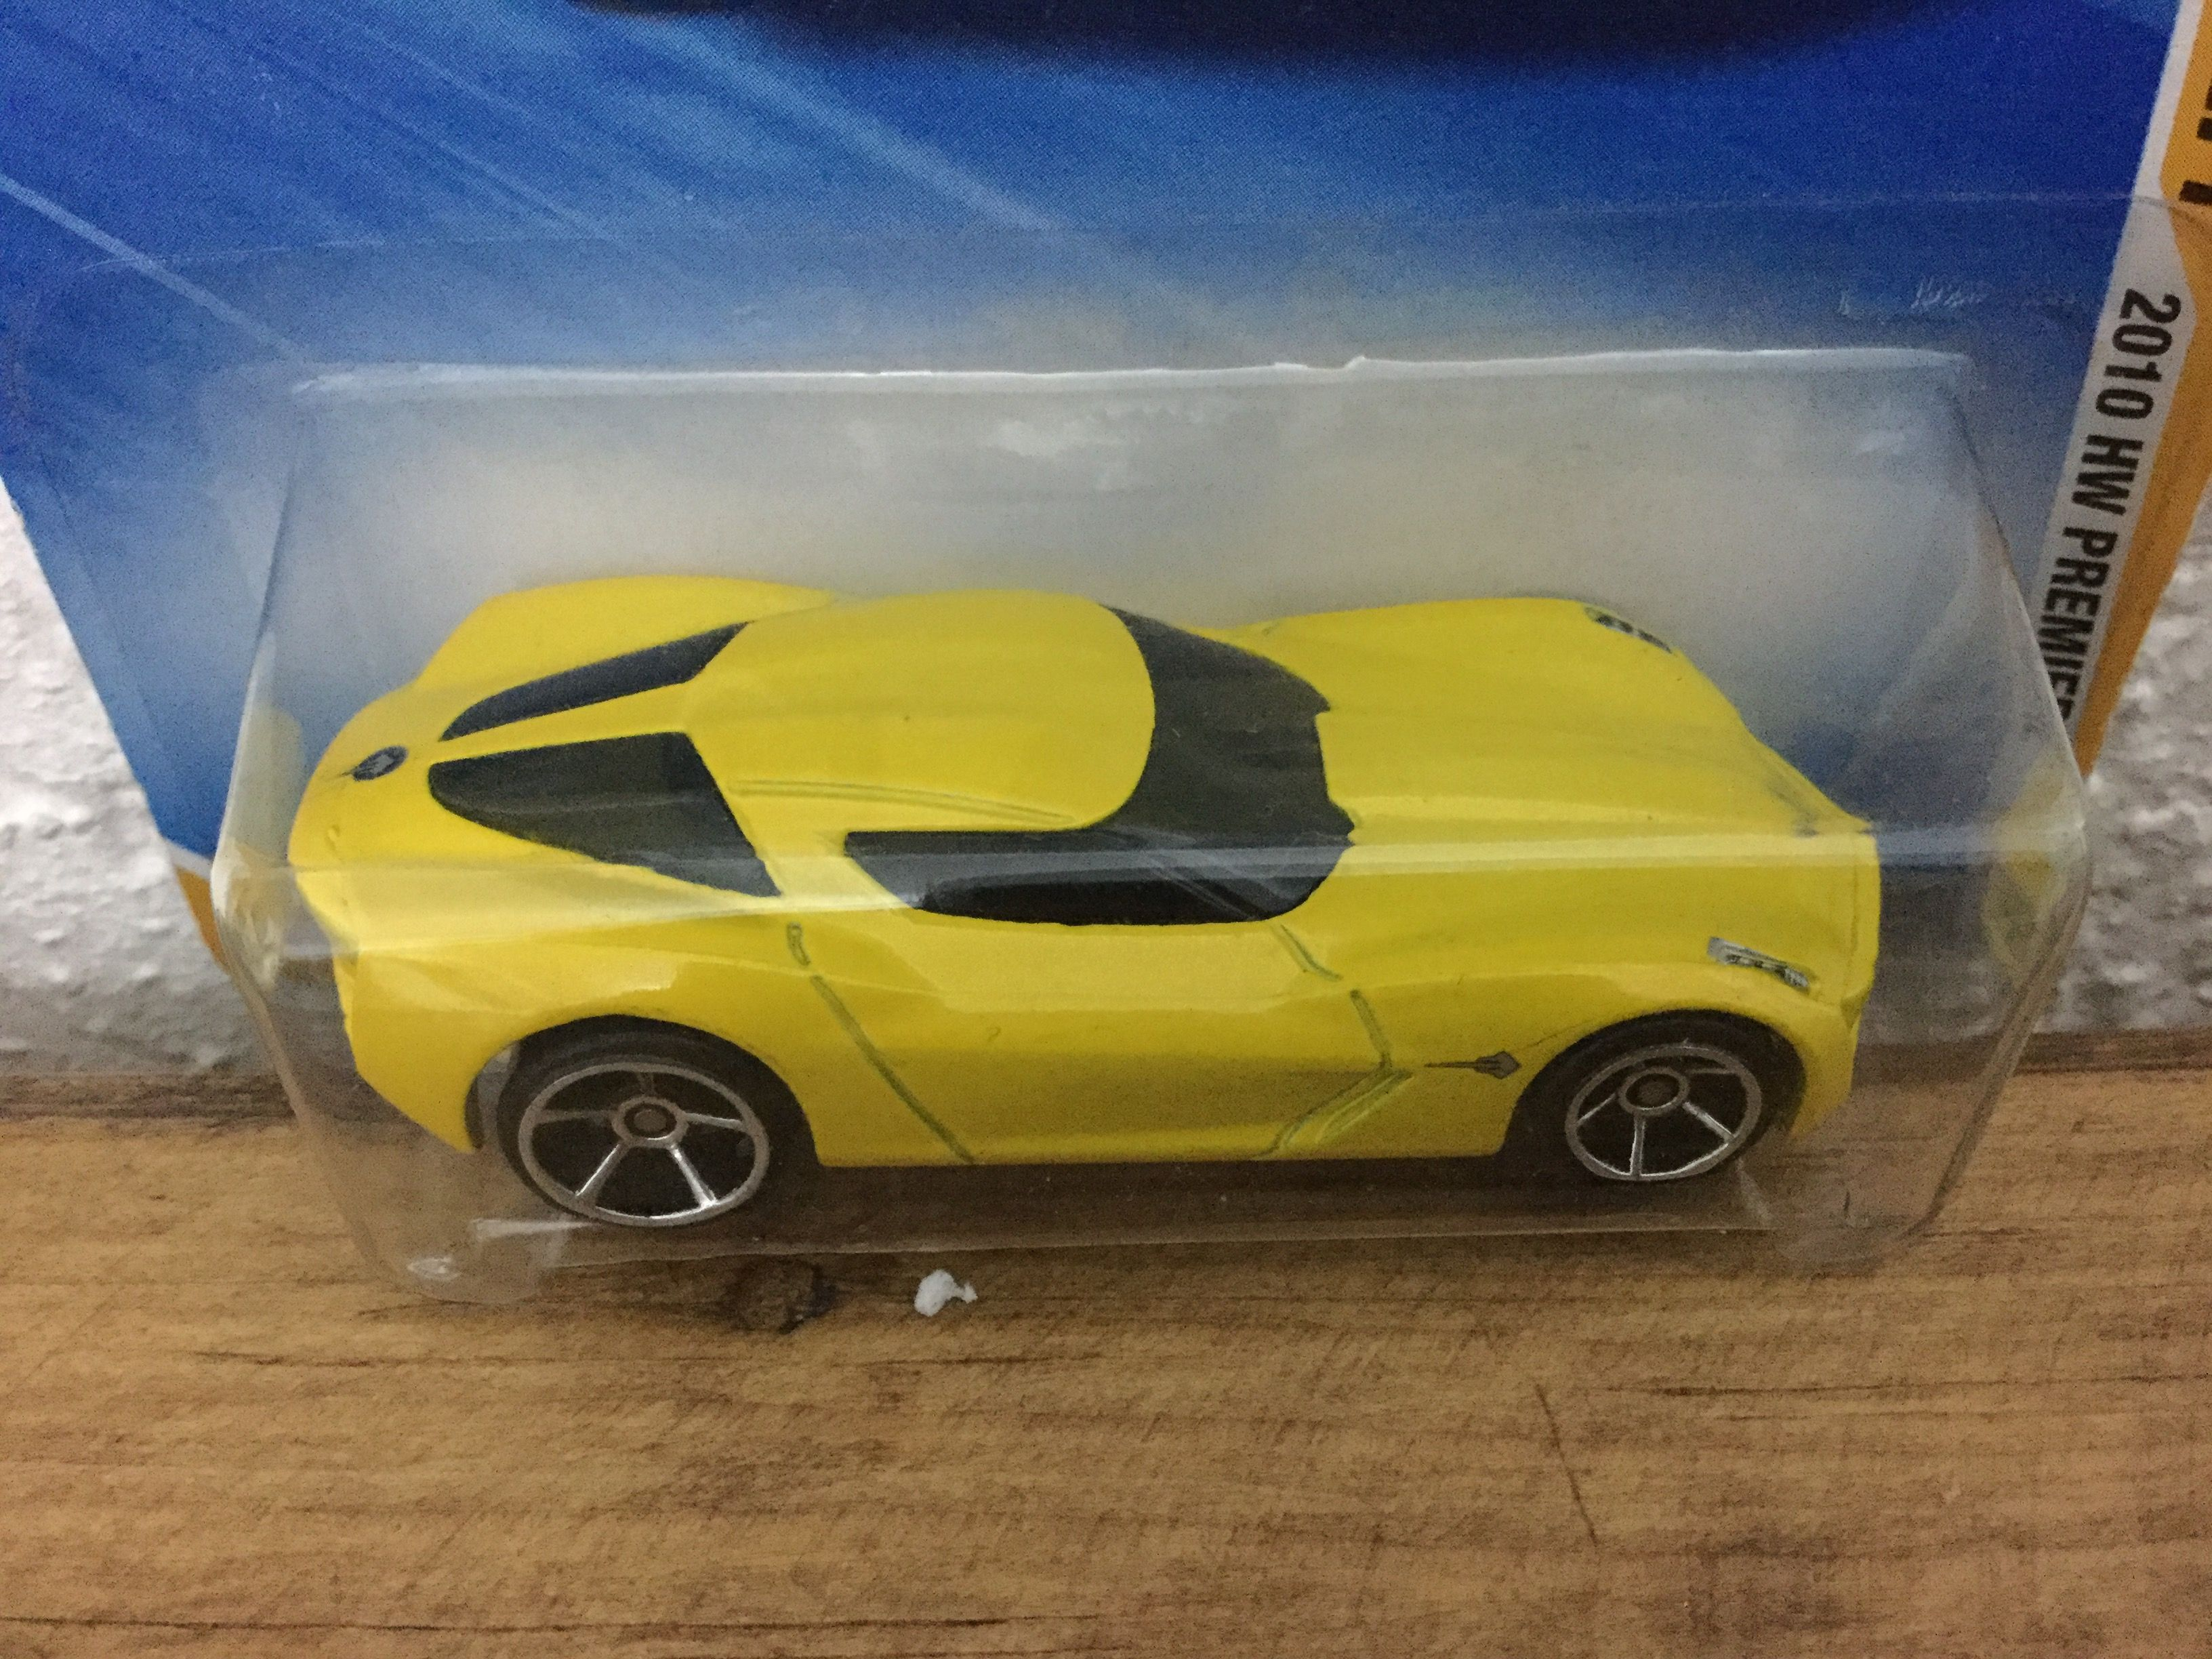 Hot Wheels - 09 Corvette Stingray Concept